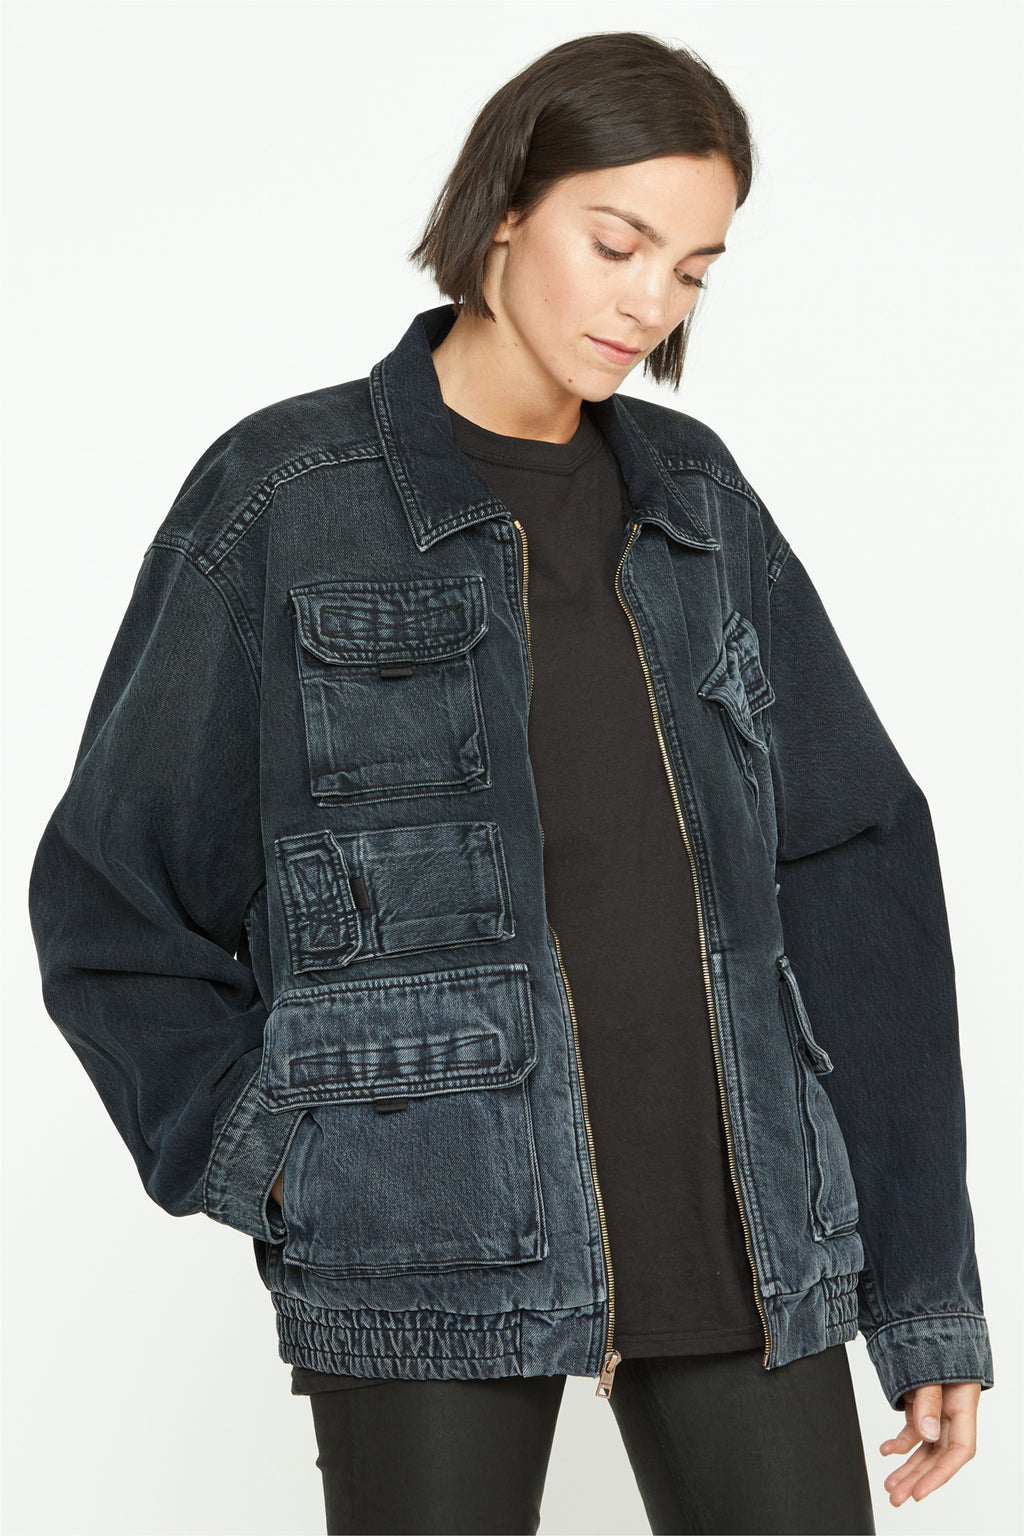 Unisex Denim Trucker Jacket - hudsonjeans